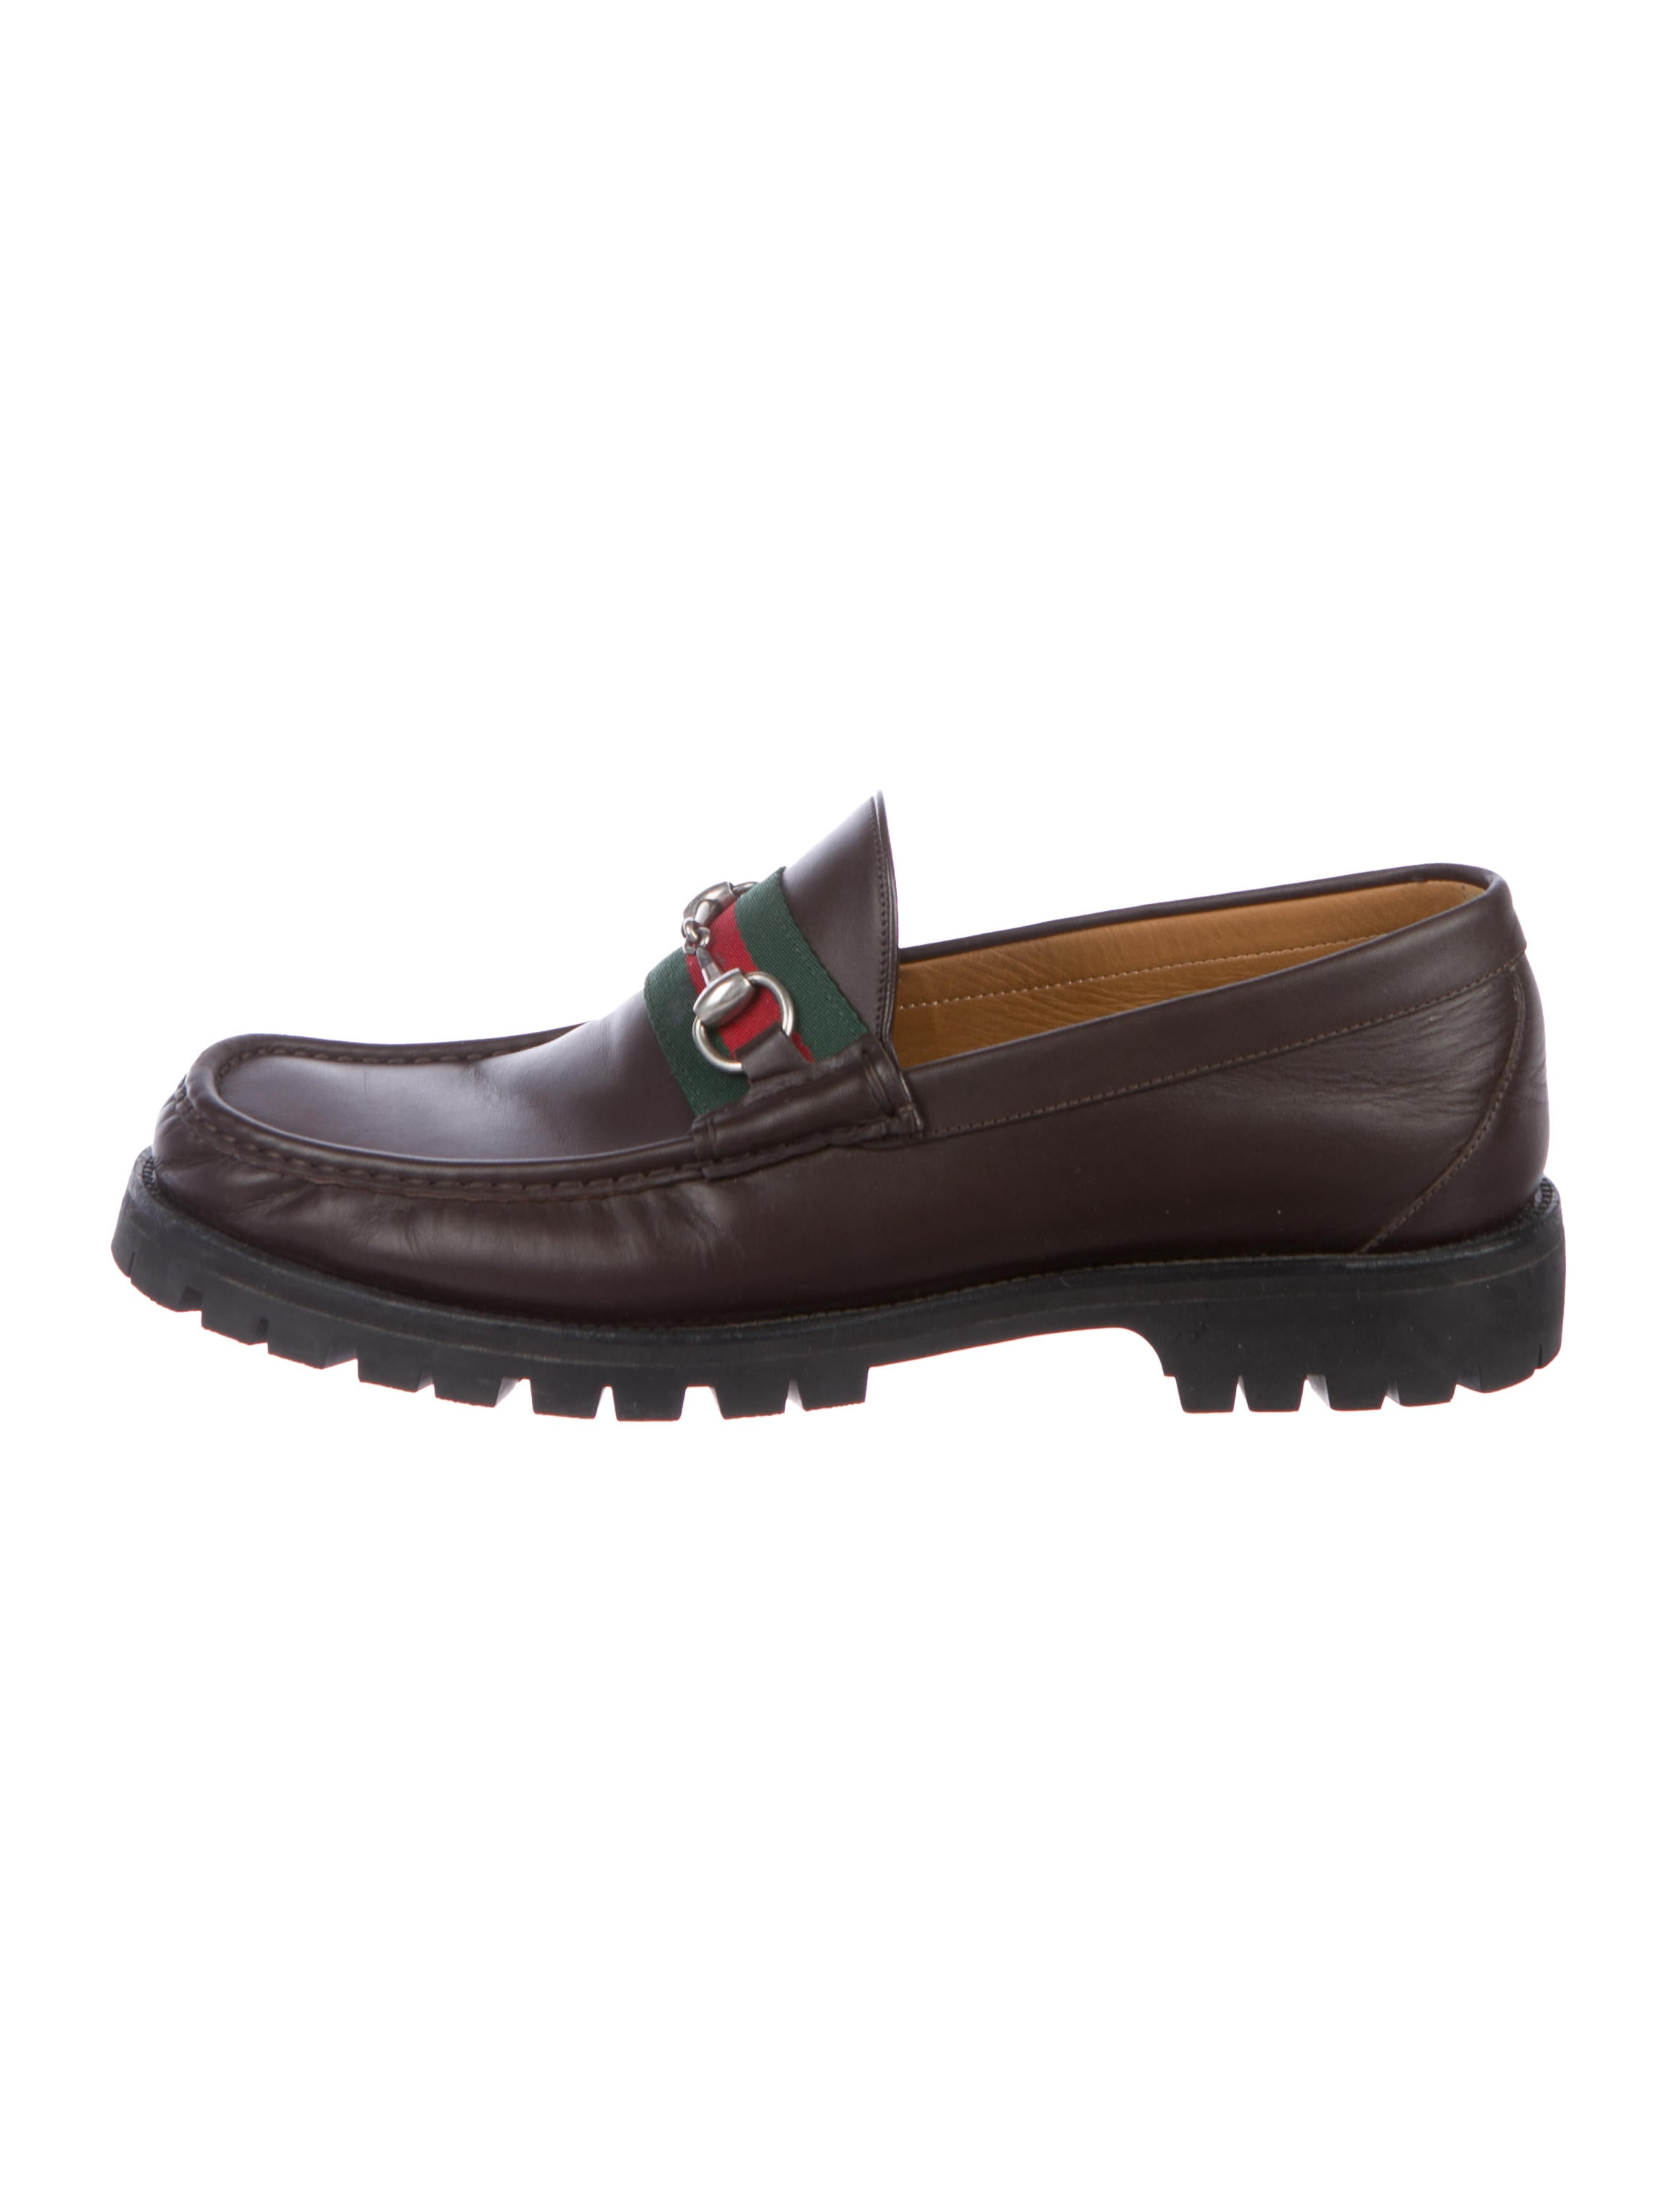 47bf283766a Gucci Horsebit Web Loafers - Shoes - GUC289737